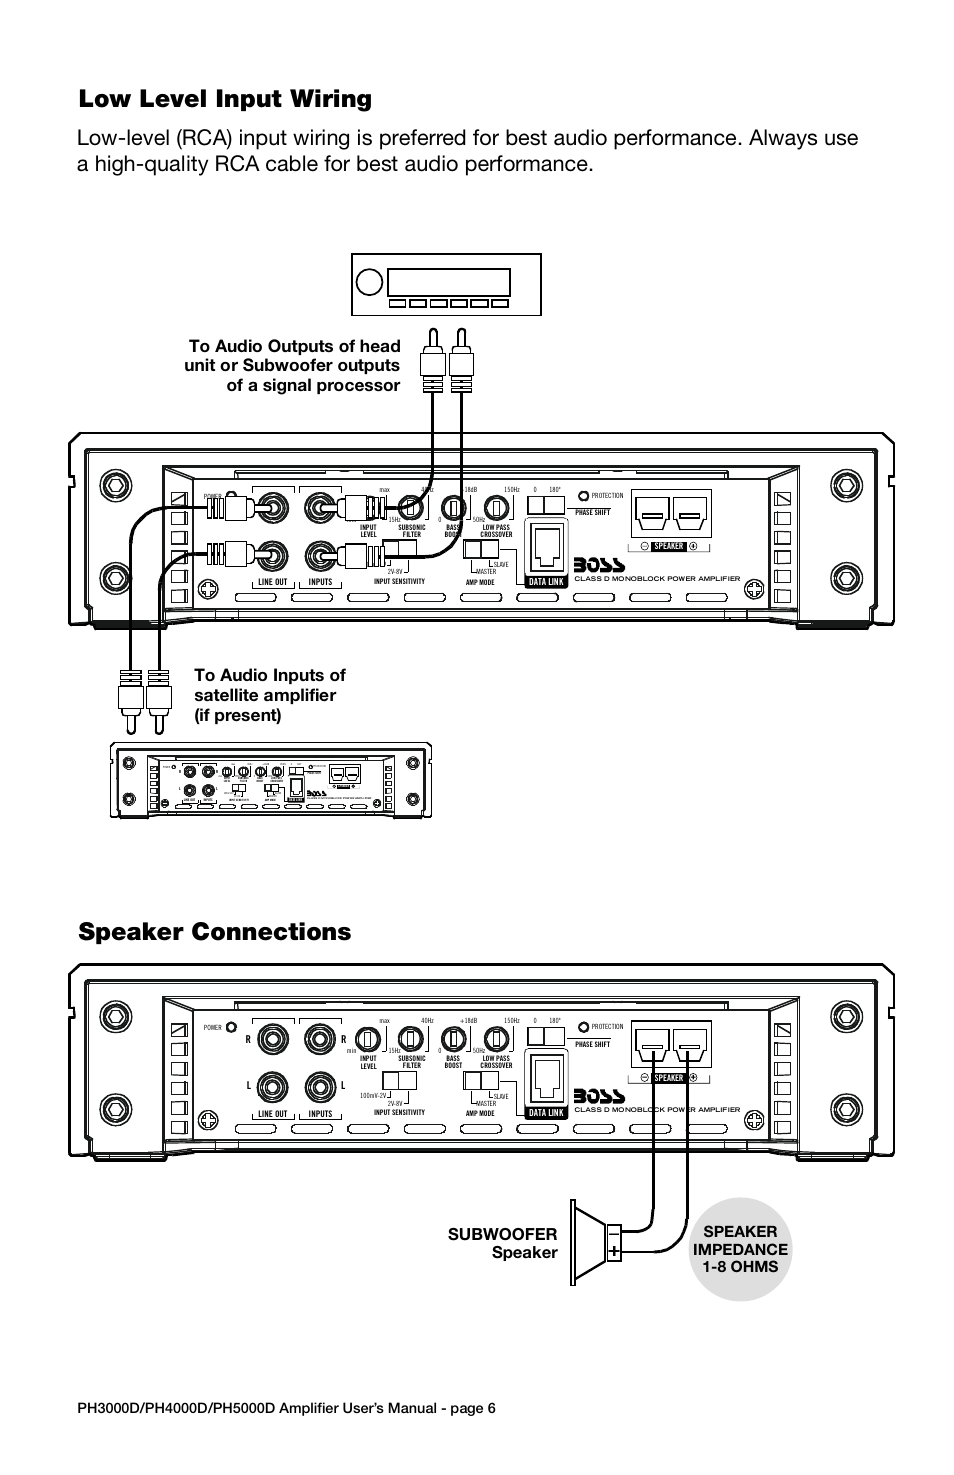 hight resolution of troubleshooting specifications low level input wiring power connections speaker connections model